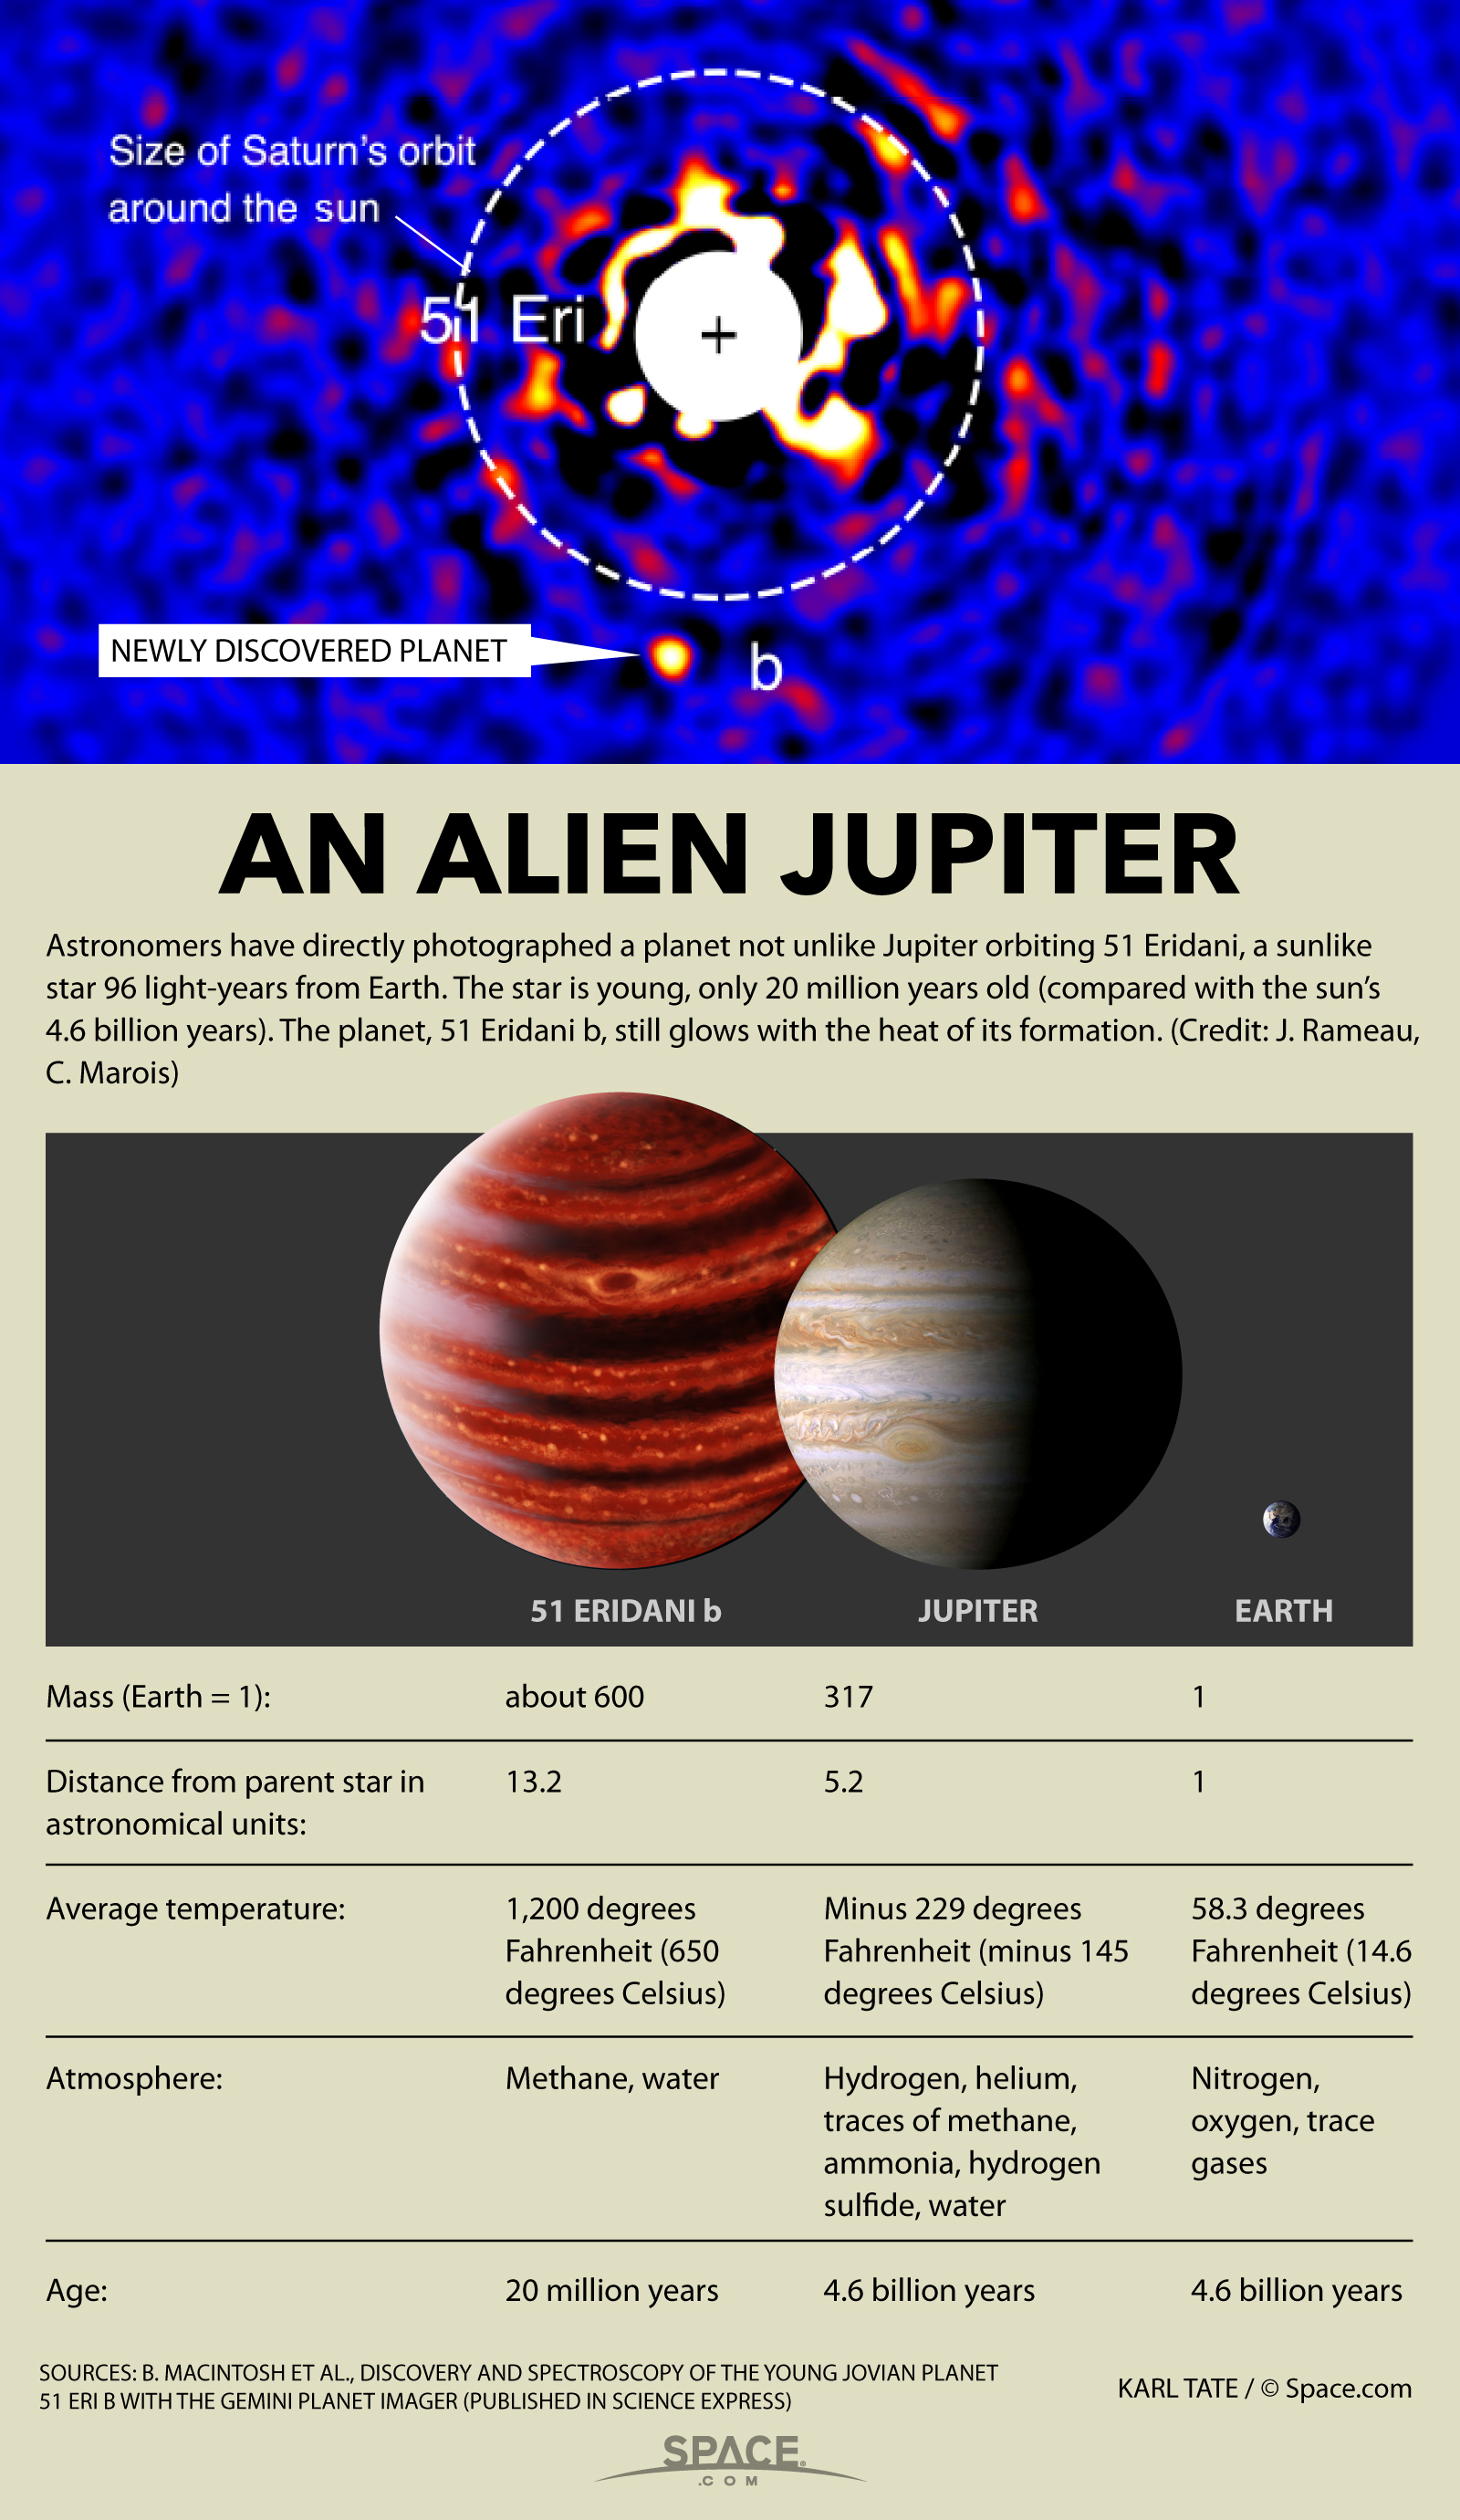 Exoplanet 51 Eridani b: A Red-Hot Young Jupiter Around Distant Star (Infographic)